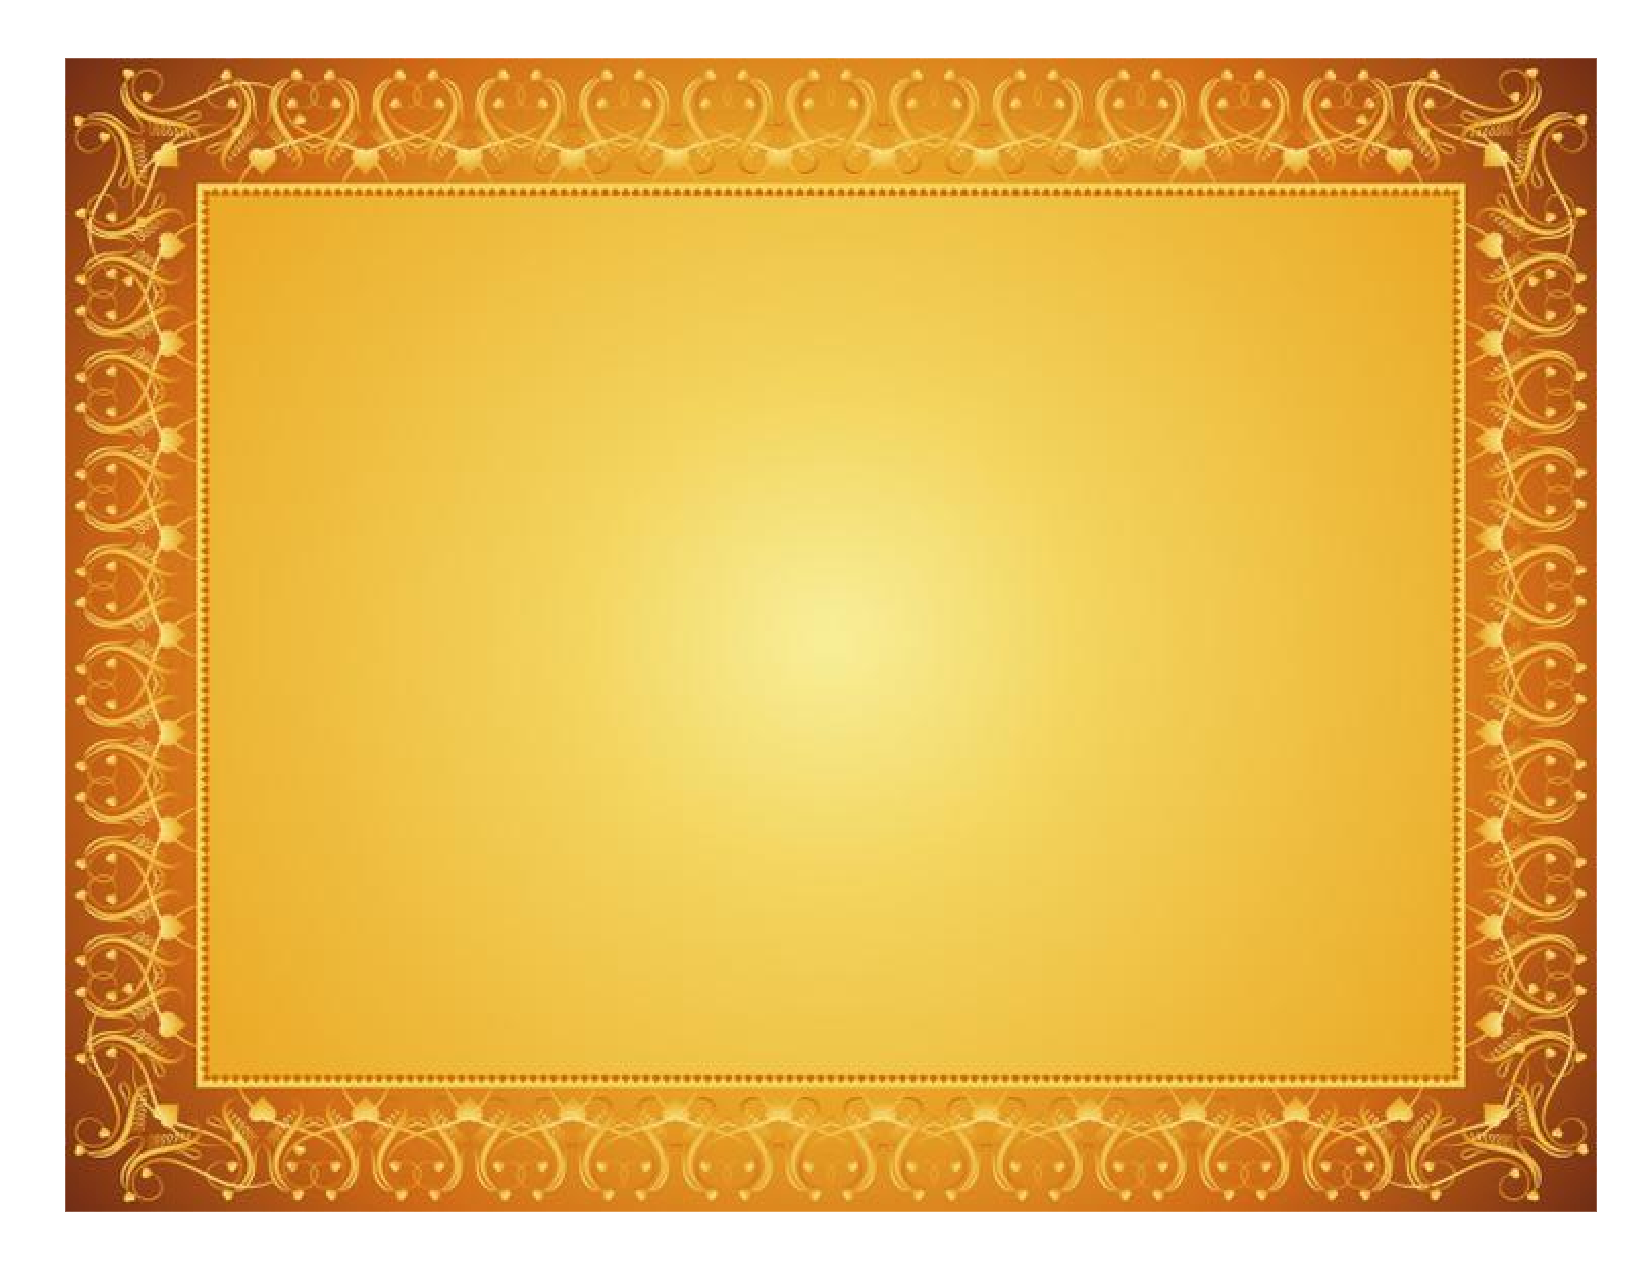 Certificate Template PNG Transparent Images.